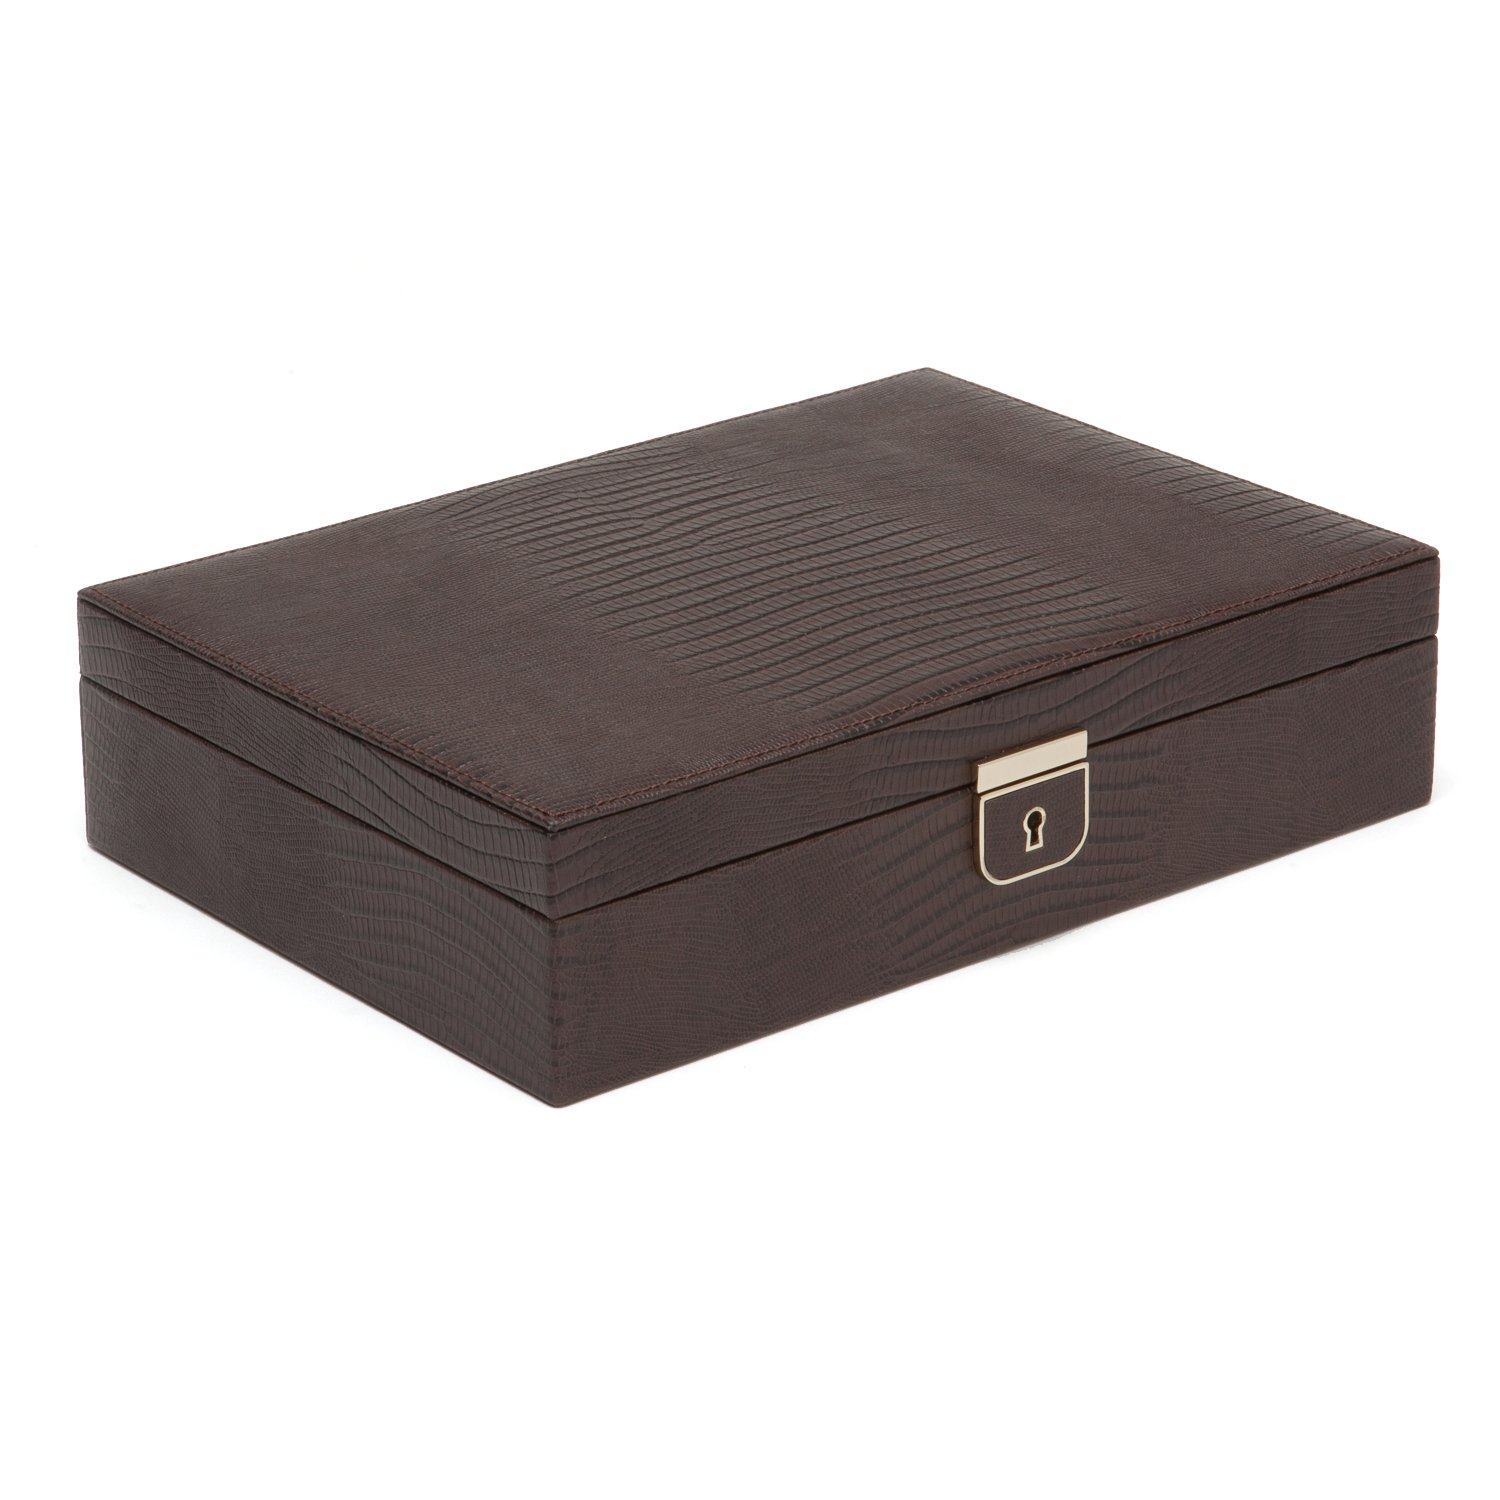 Wolf Designs Palermo Medium Leather Flat Jewelry Boxes in Brown